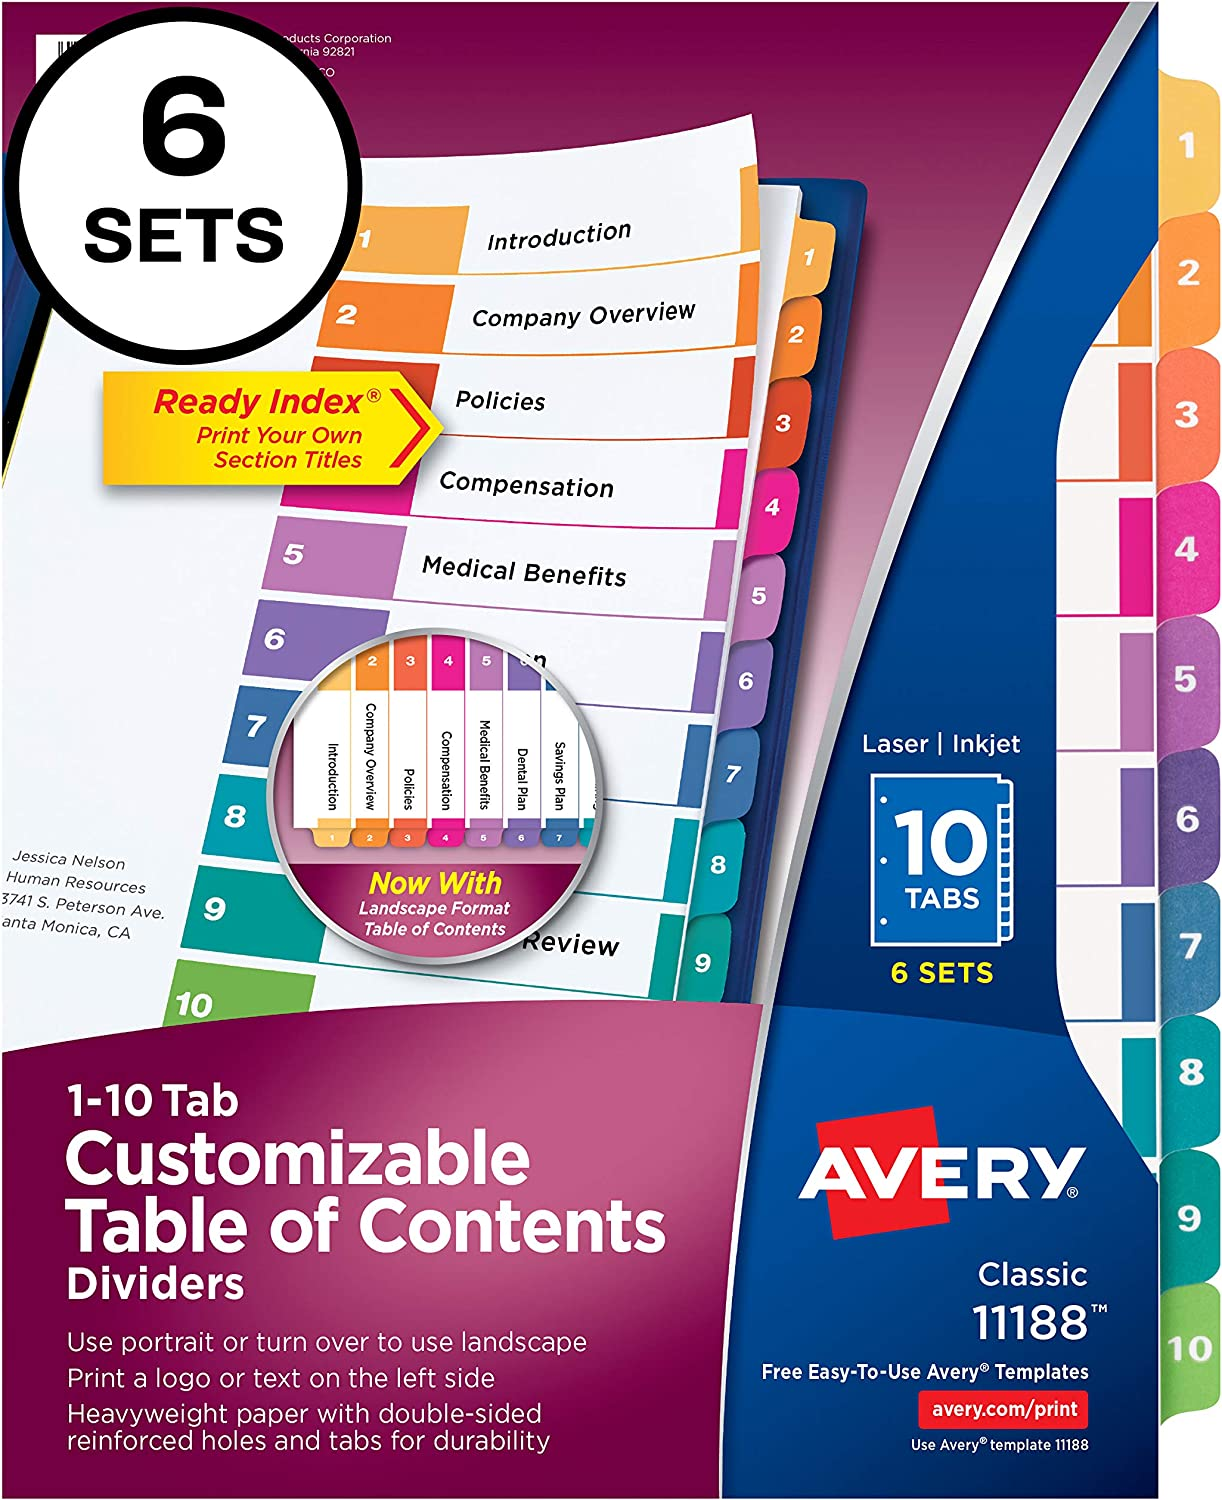 Avery 10-Tab Dividers for 3 Ring Binders, Customizable Table of Contents, Multicolor Tabs, 6 Sets (11188) : Binder Index Dividers : Office Products